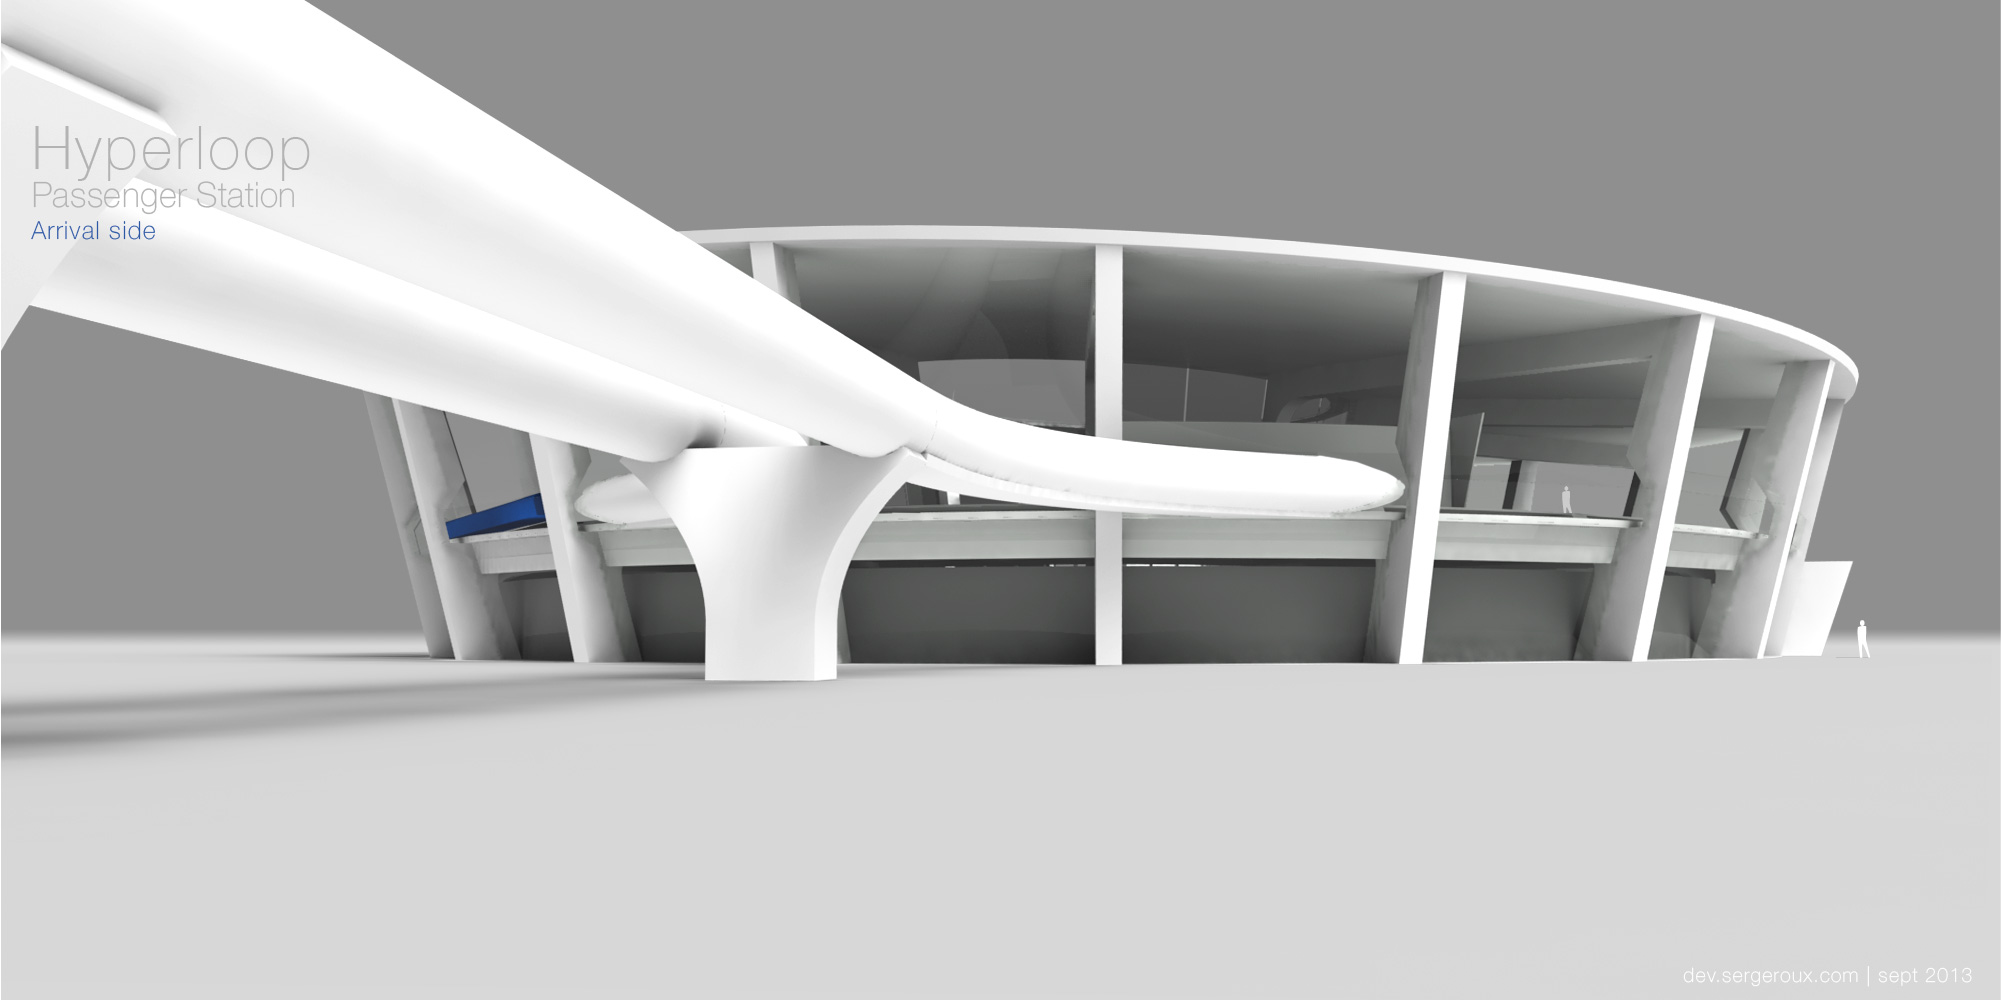 Hyperloop Station - Arrival side